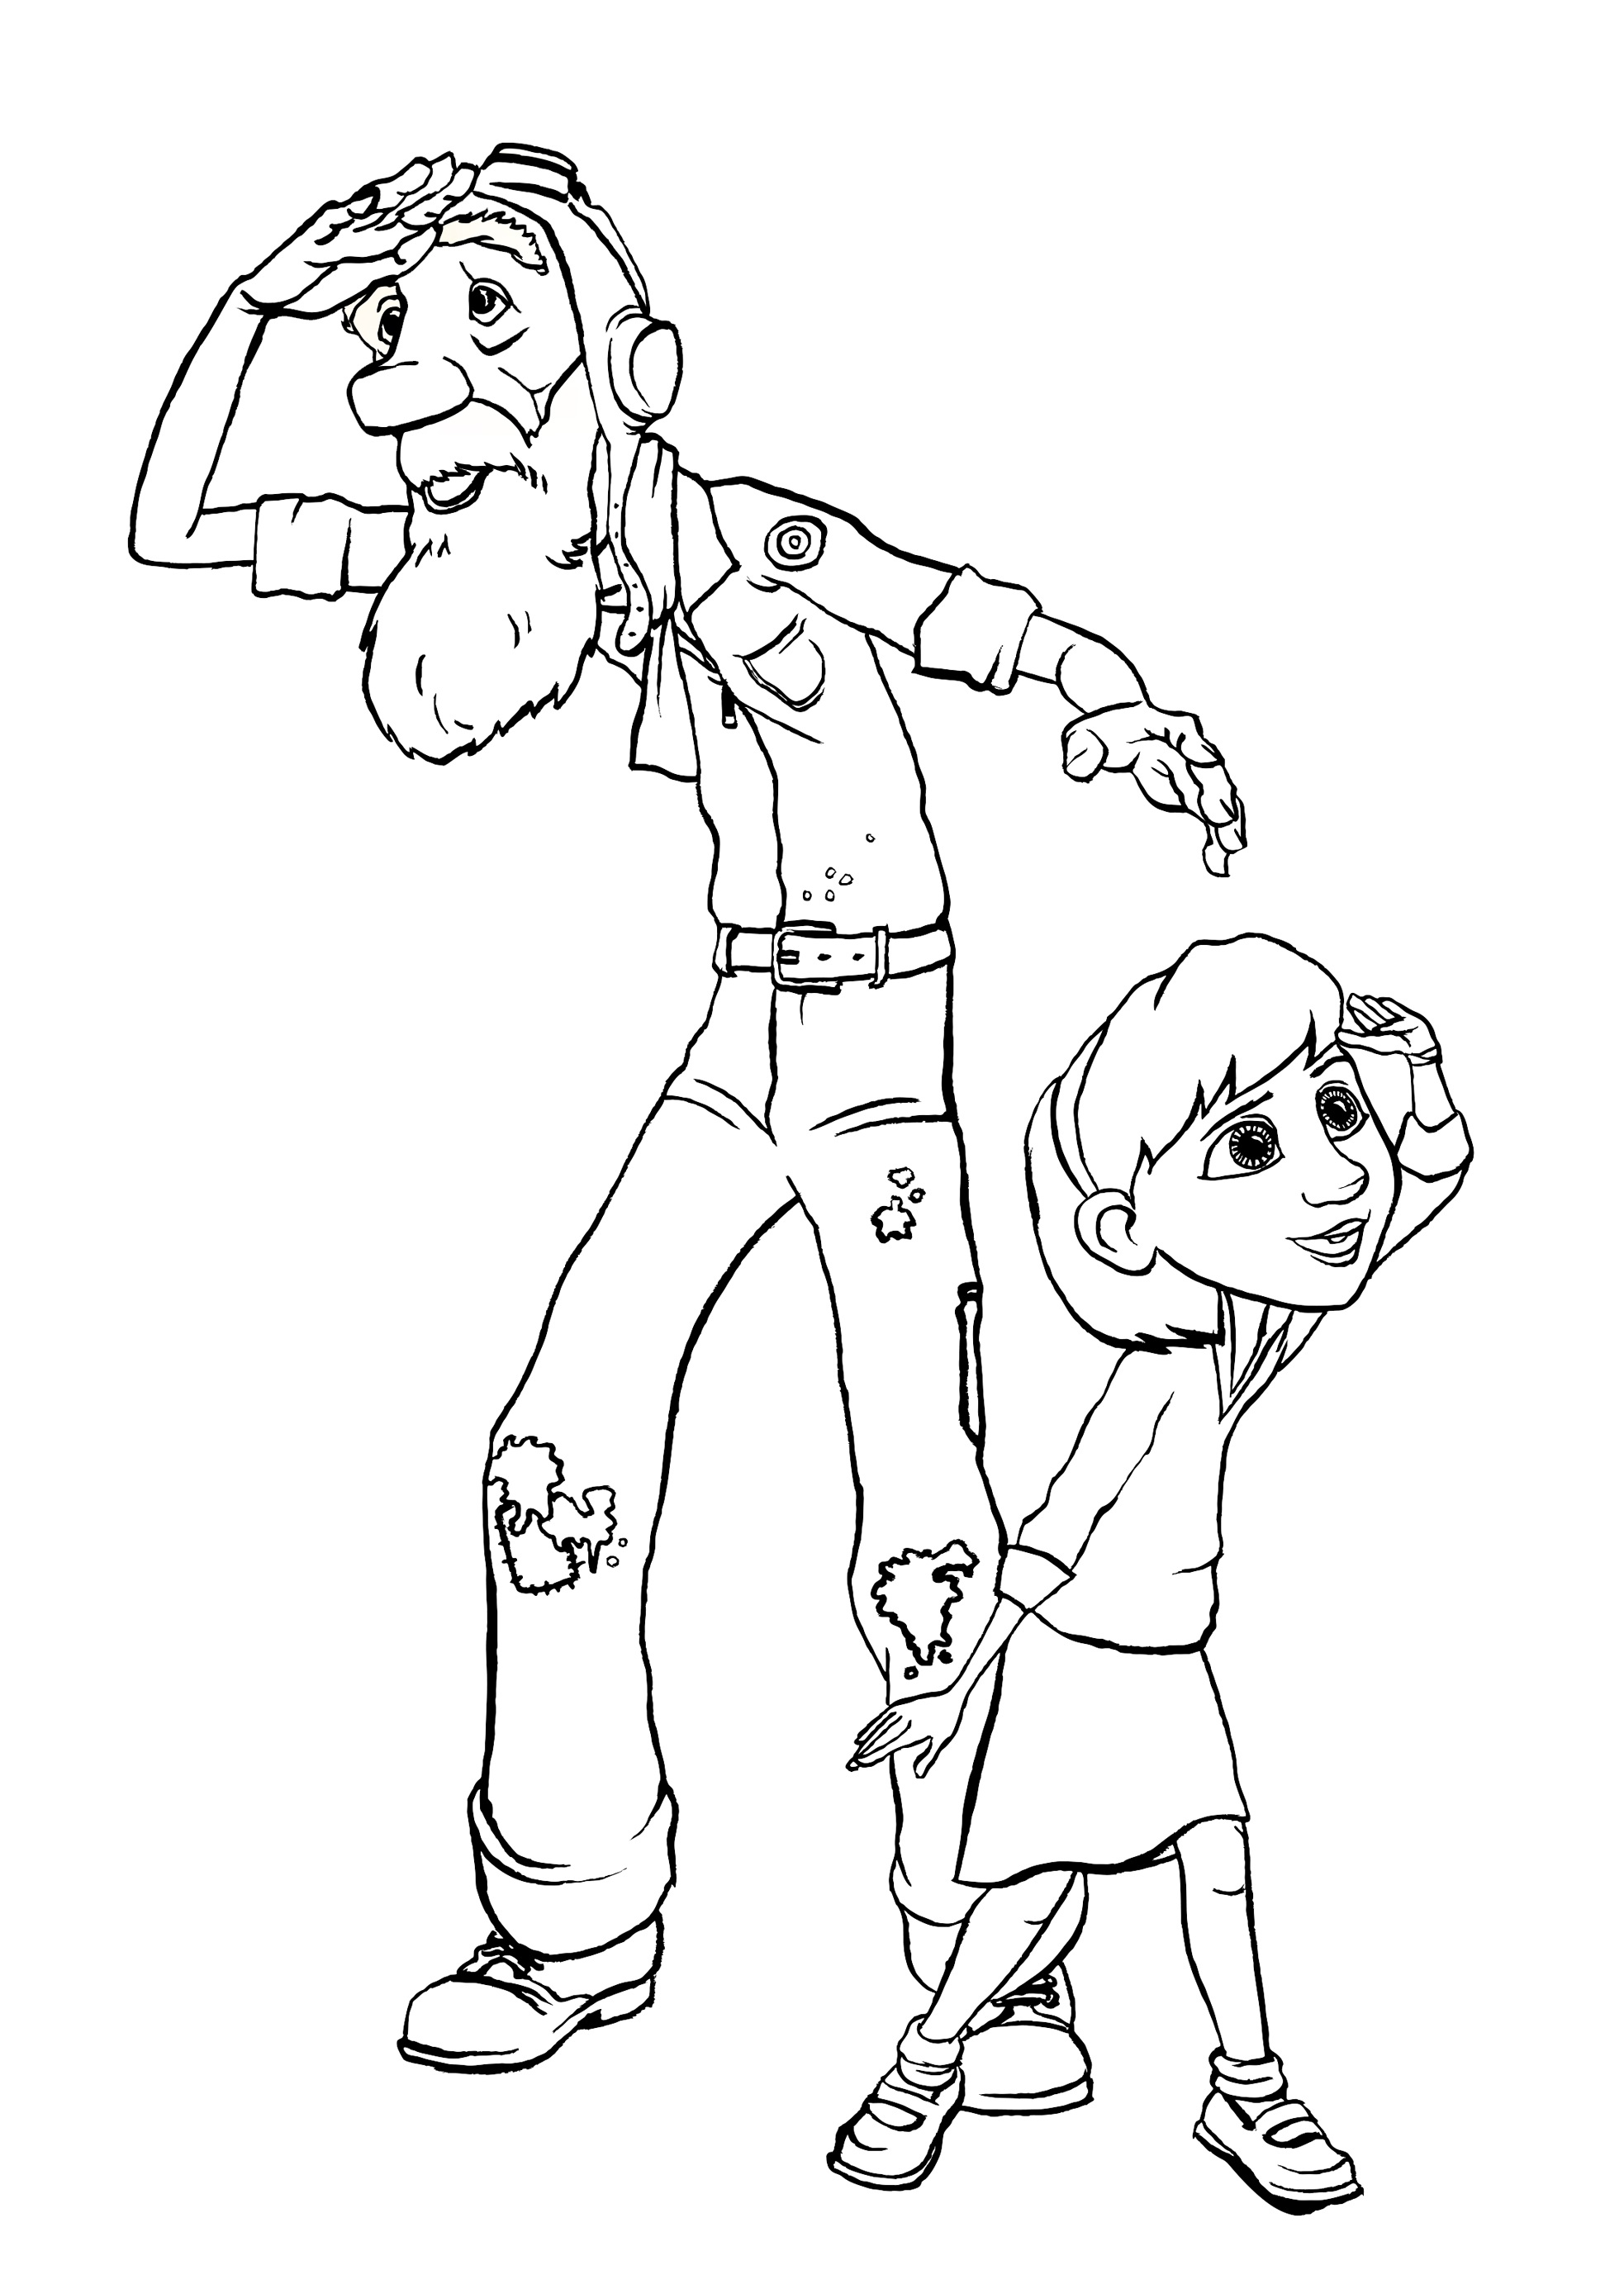 Le petit prince coloring pages download and print free, cute coloring pages